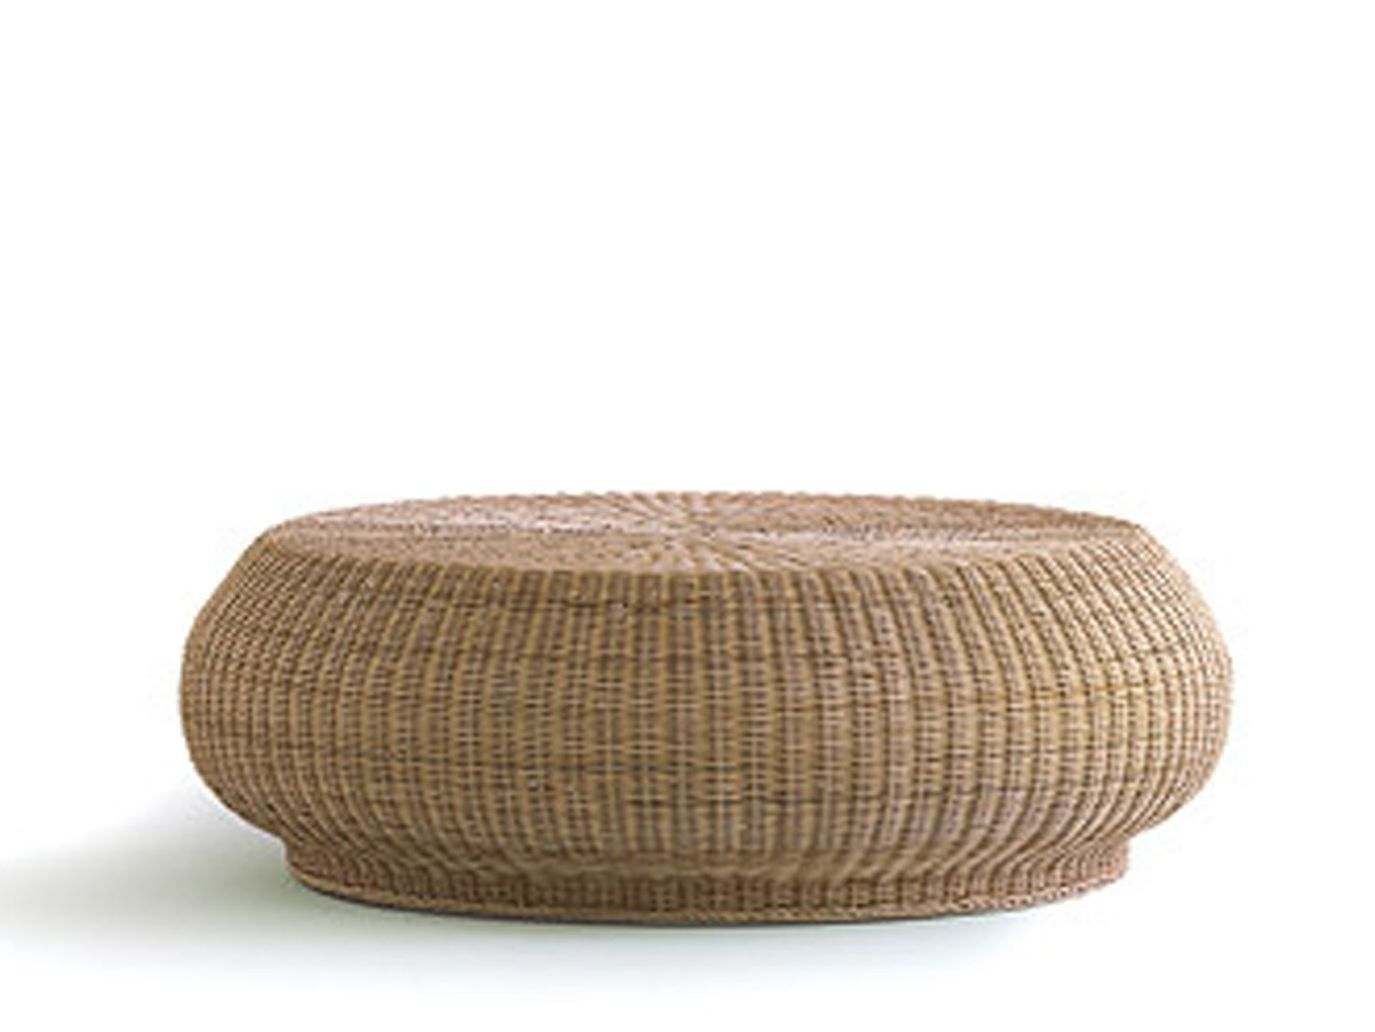 Low Round Woven Wicker Coffee Table Bolla 15 Collection By Gervasoni Design Michael Sodeau